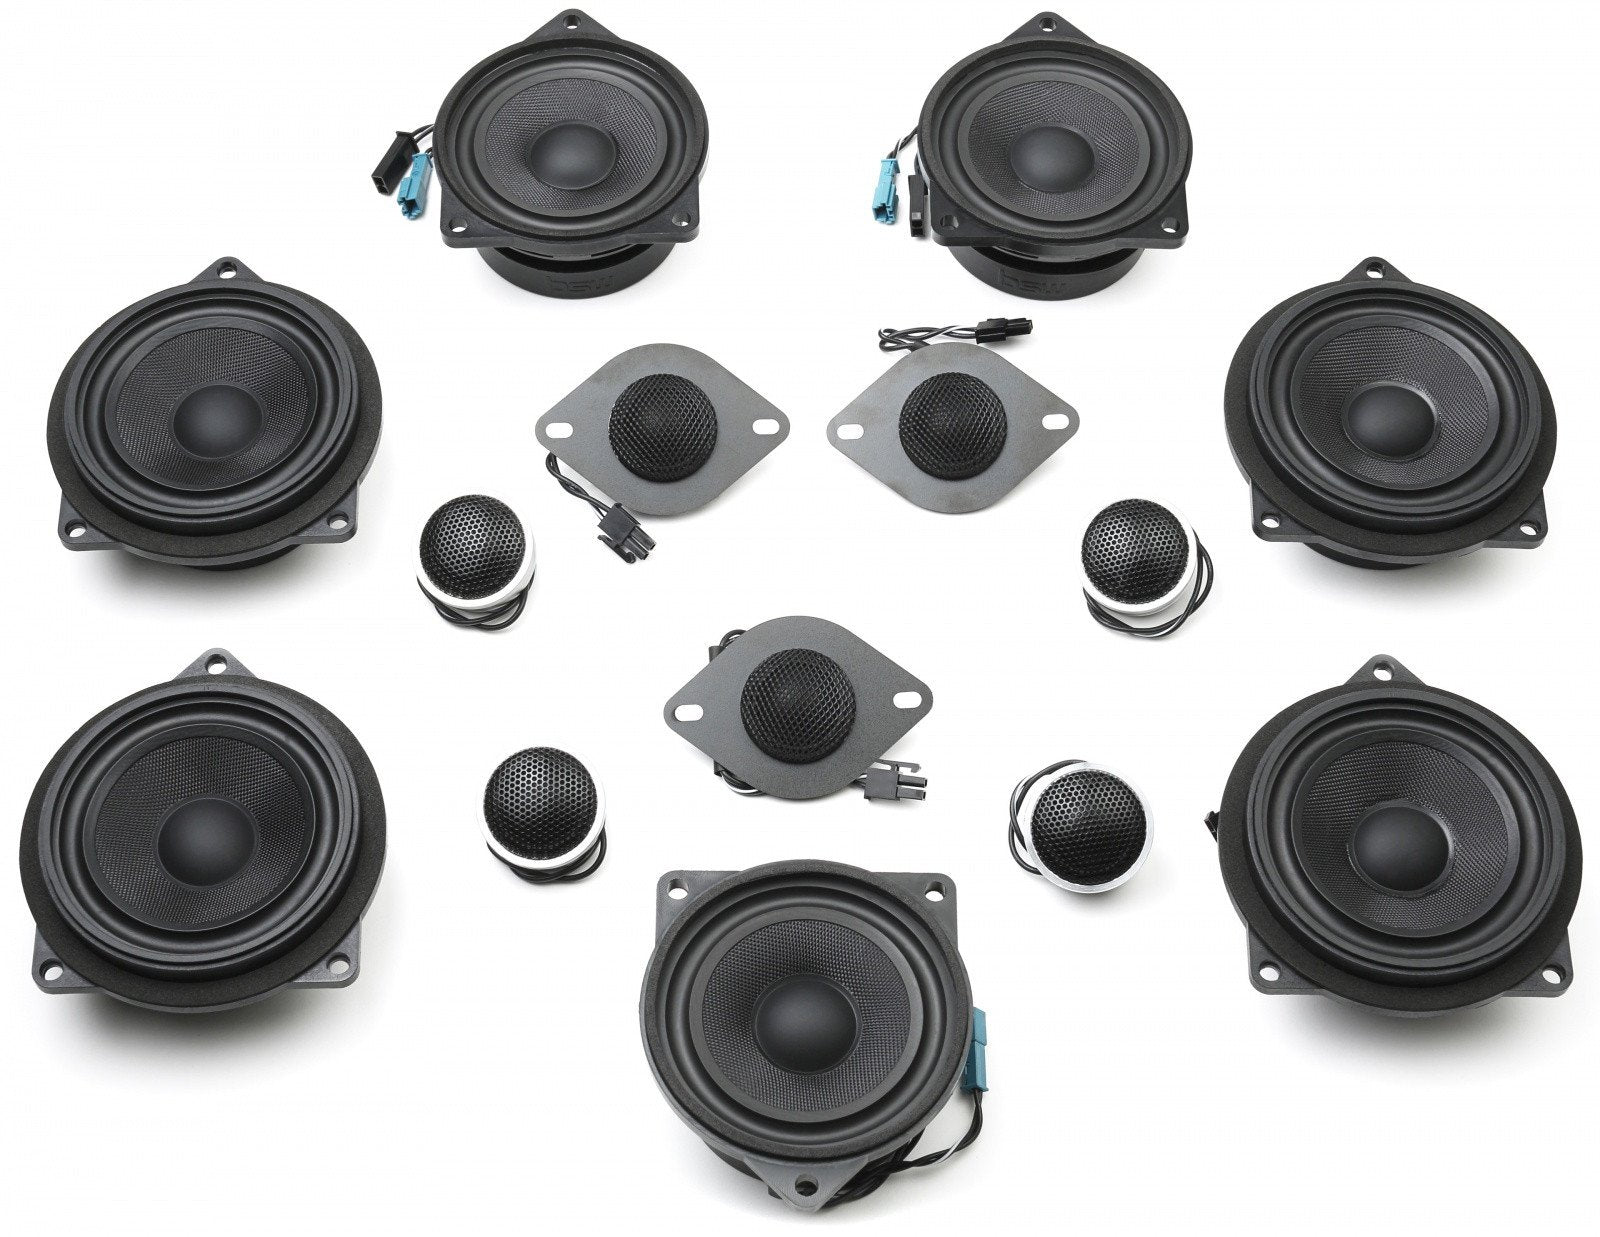 Bavsound Speaker Upgrade G11/G12 7 Series with Harman Kardon